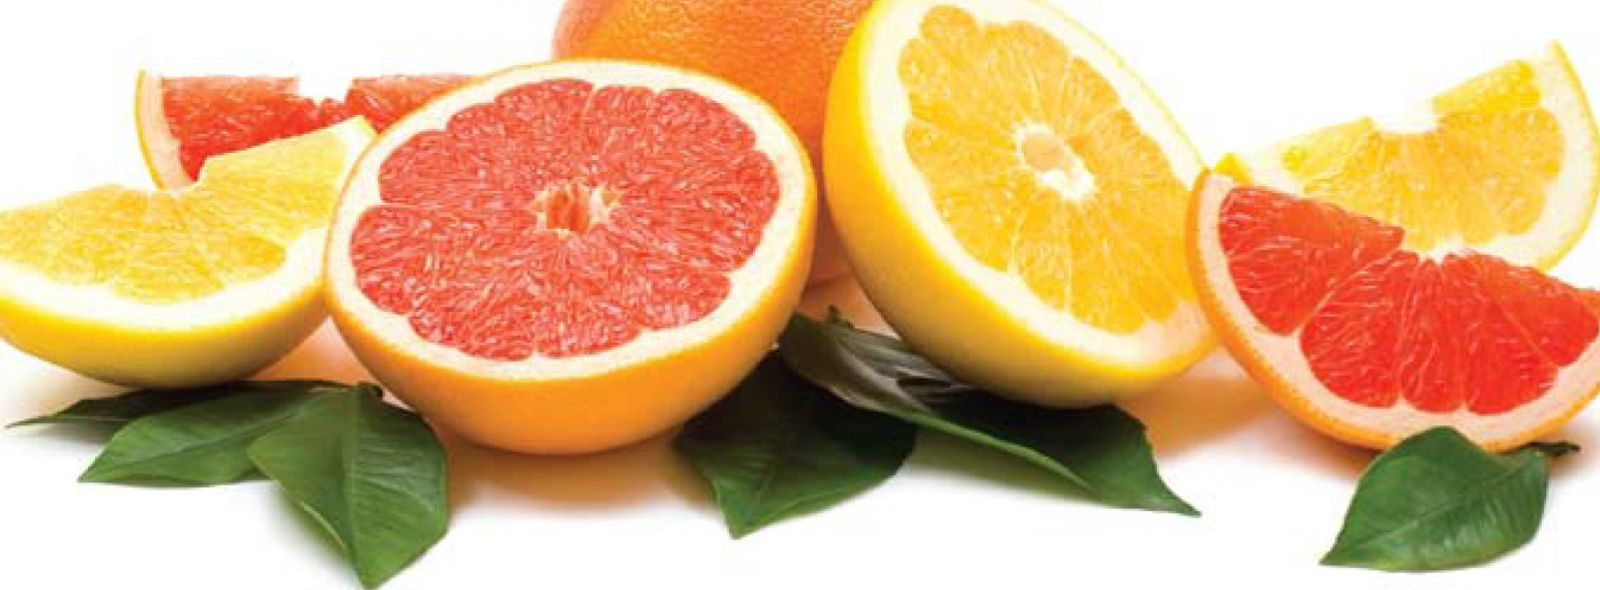 Vitamin C or Ascorbic Acid